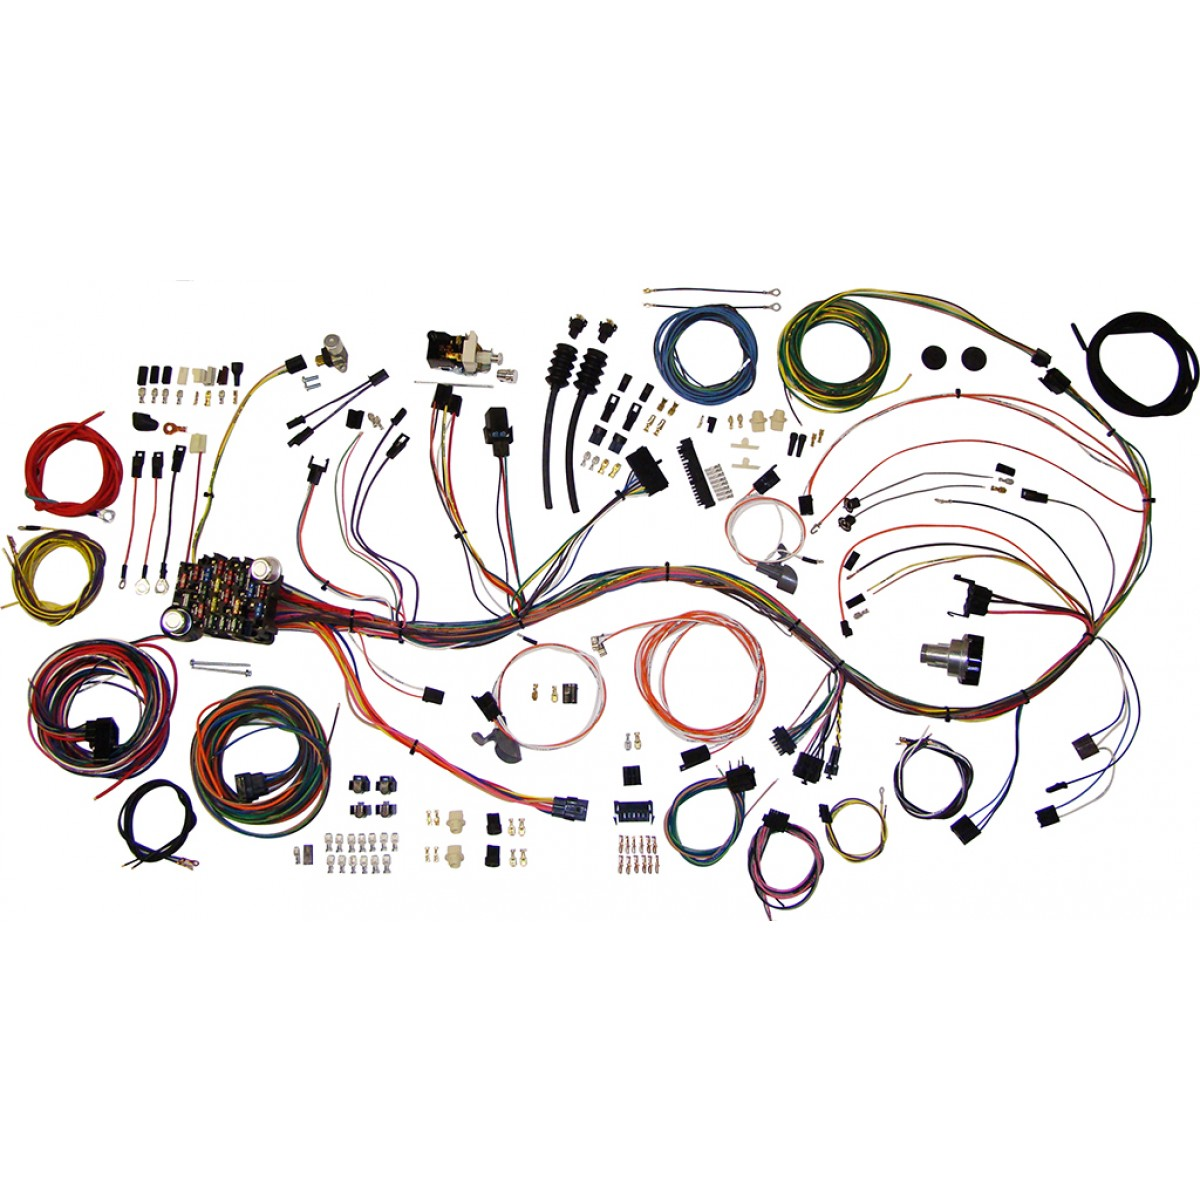 complete wiring harness kit 1969 1972 chevy truck part 510089 c10 c20 wire harness chevy c10 wiring harness electrical, dash wires, chevy truck 1965 chevy c10 wiring harness at alyssarenee.co